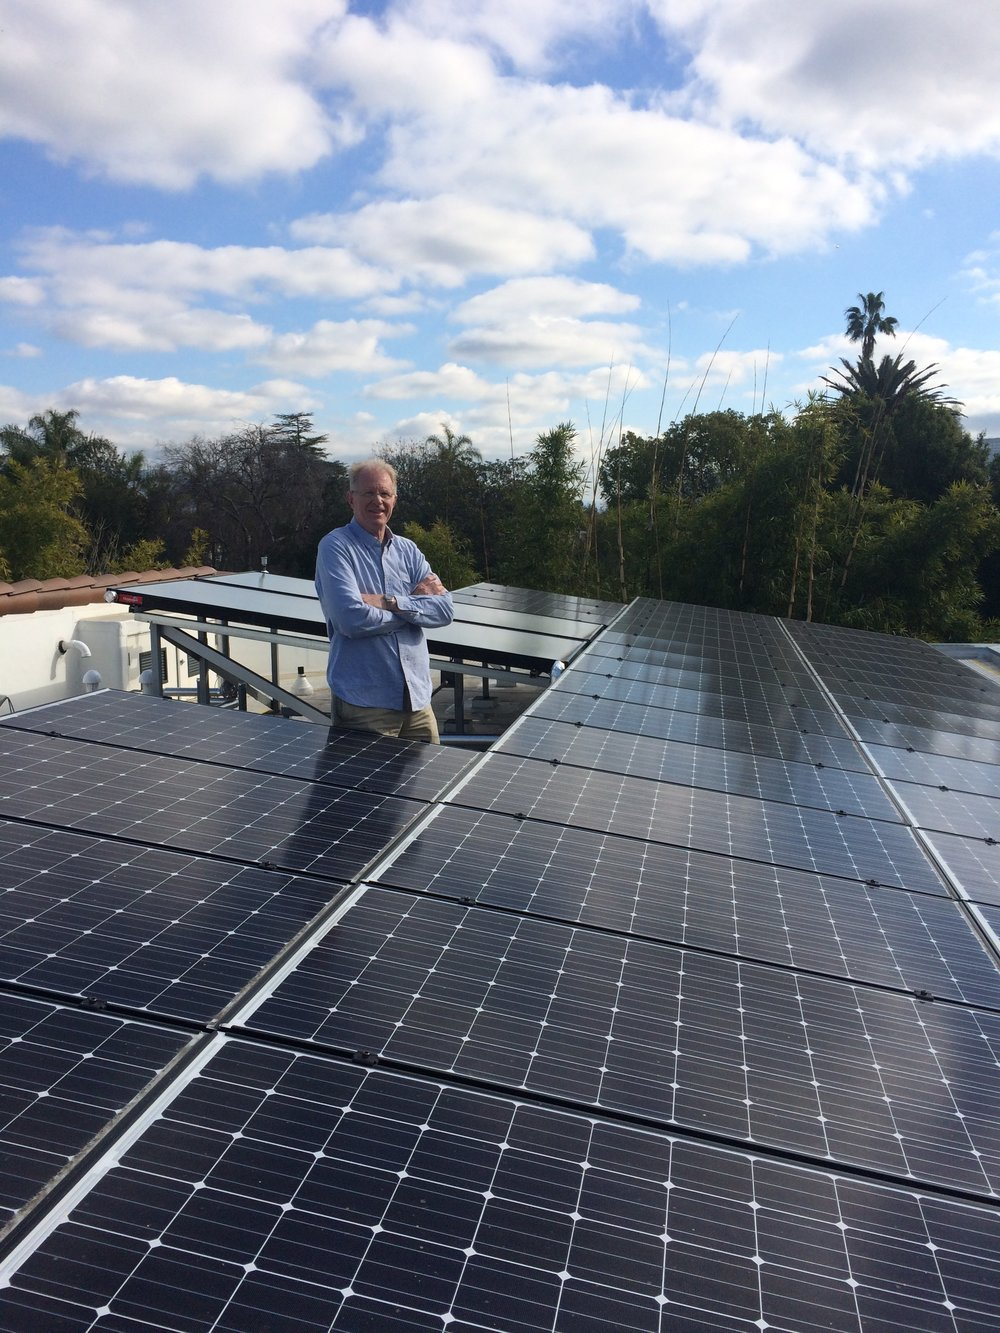 Ed with his solar panels